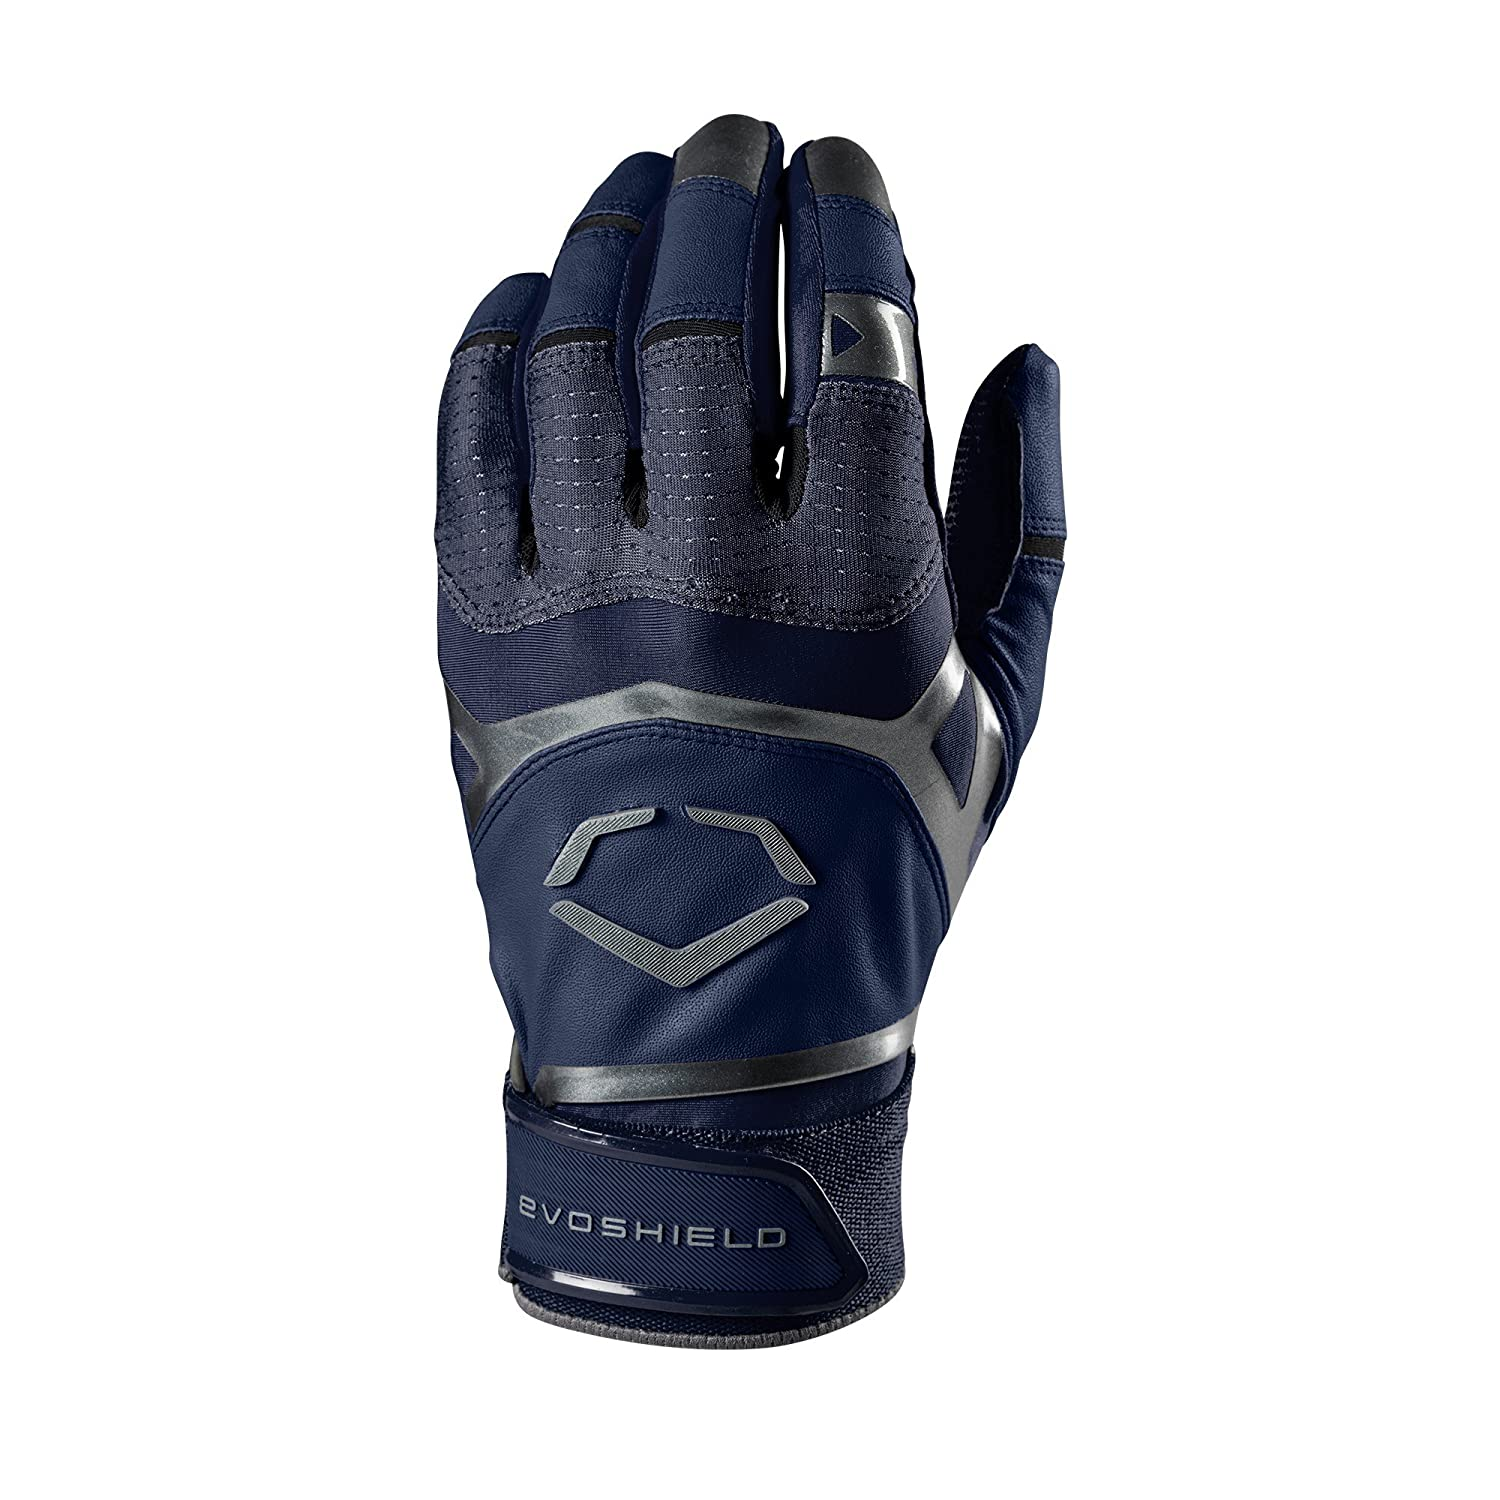 【WEB限定】 (Adult, Large, B07FXPWKVK Navy) - EvoShield EvoShield XGT Batting Gloves (Adult, B07FXPWKVK, 激安家具:17927359 --- a0267596.xsph.ru